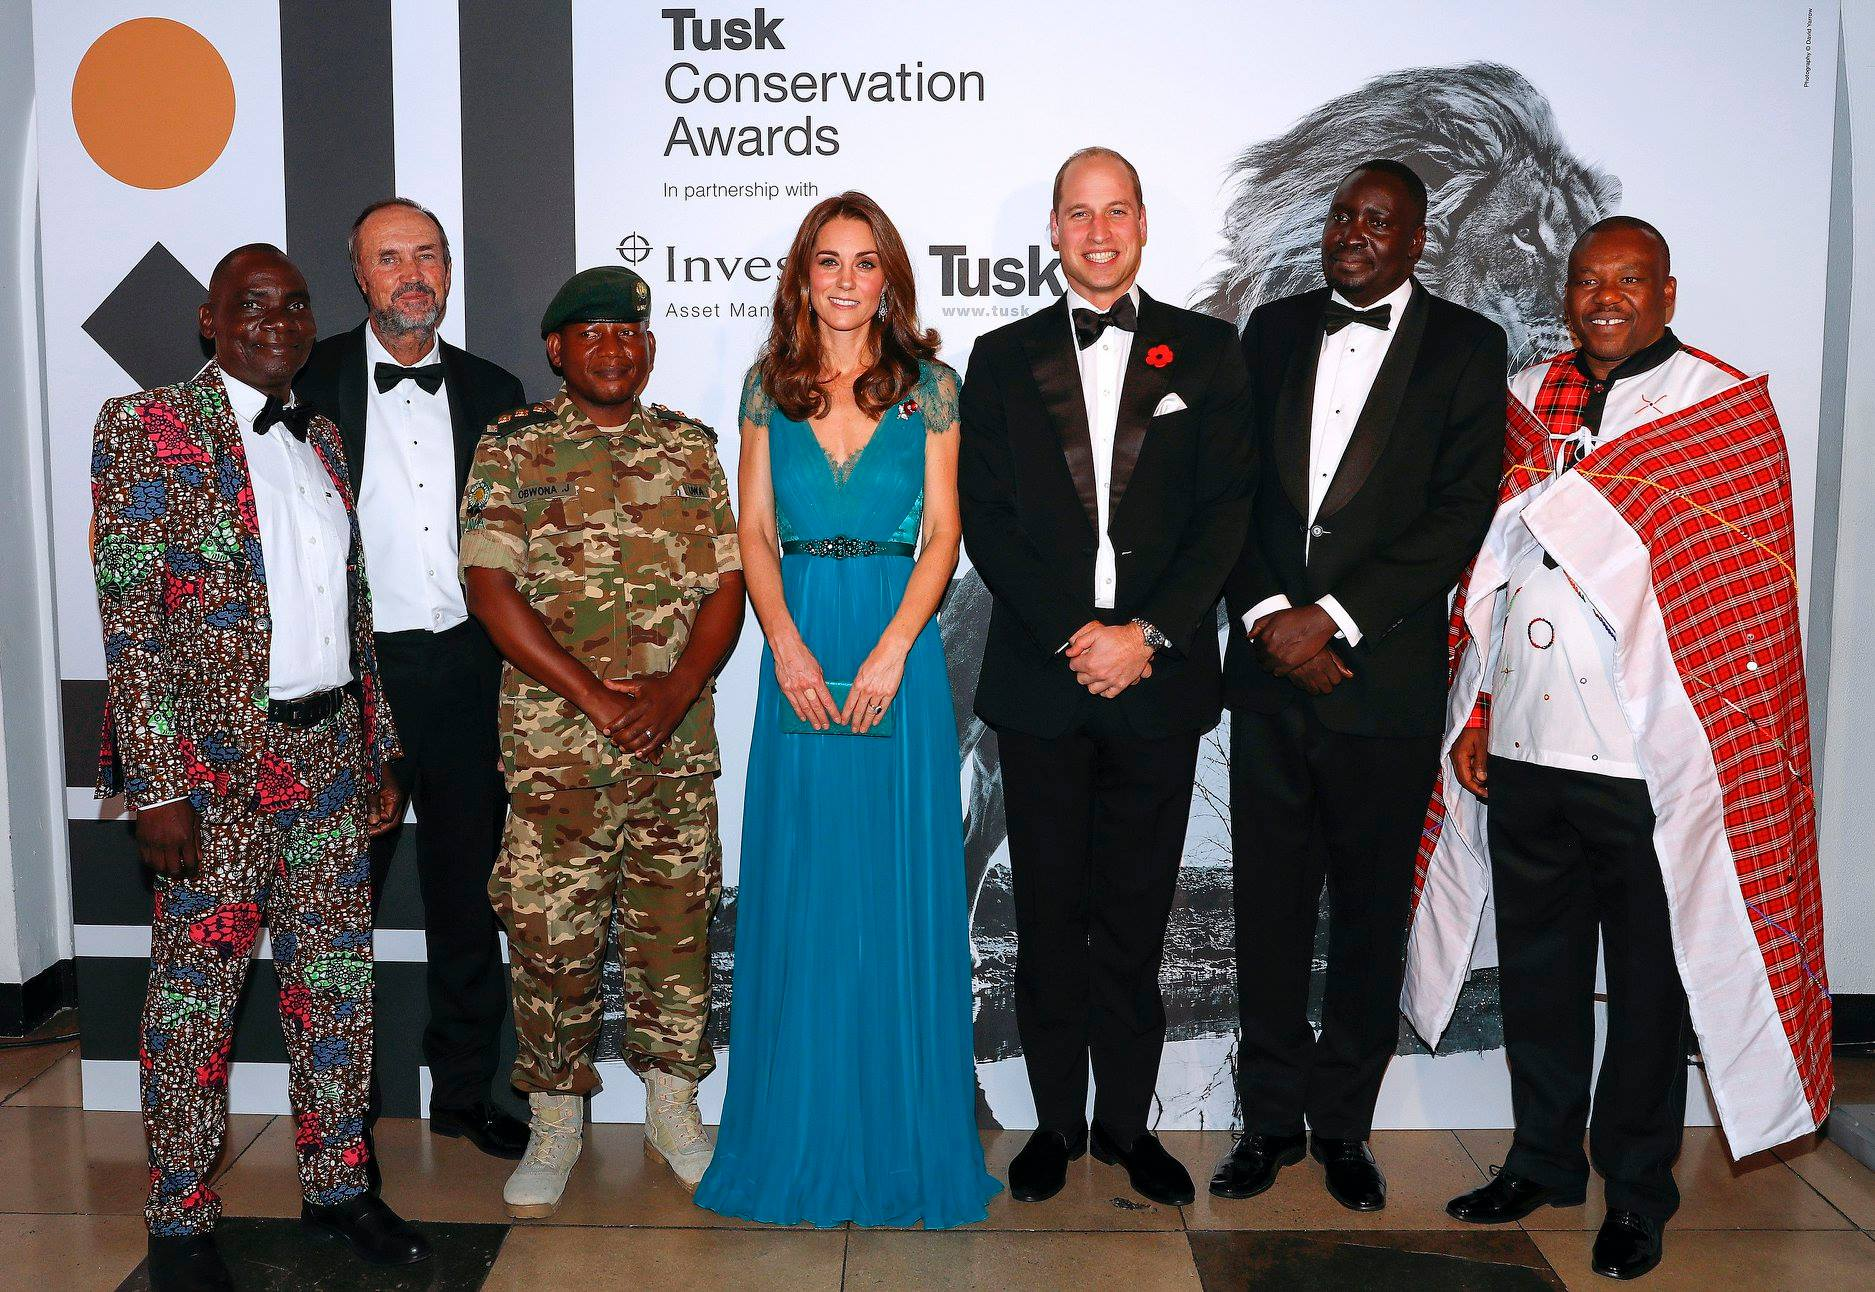 Duke and Duchess of Cambridge with the Tusk Conservation Award Winners 2018